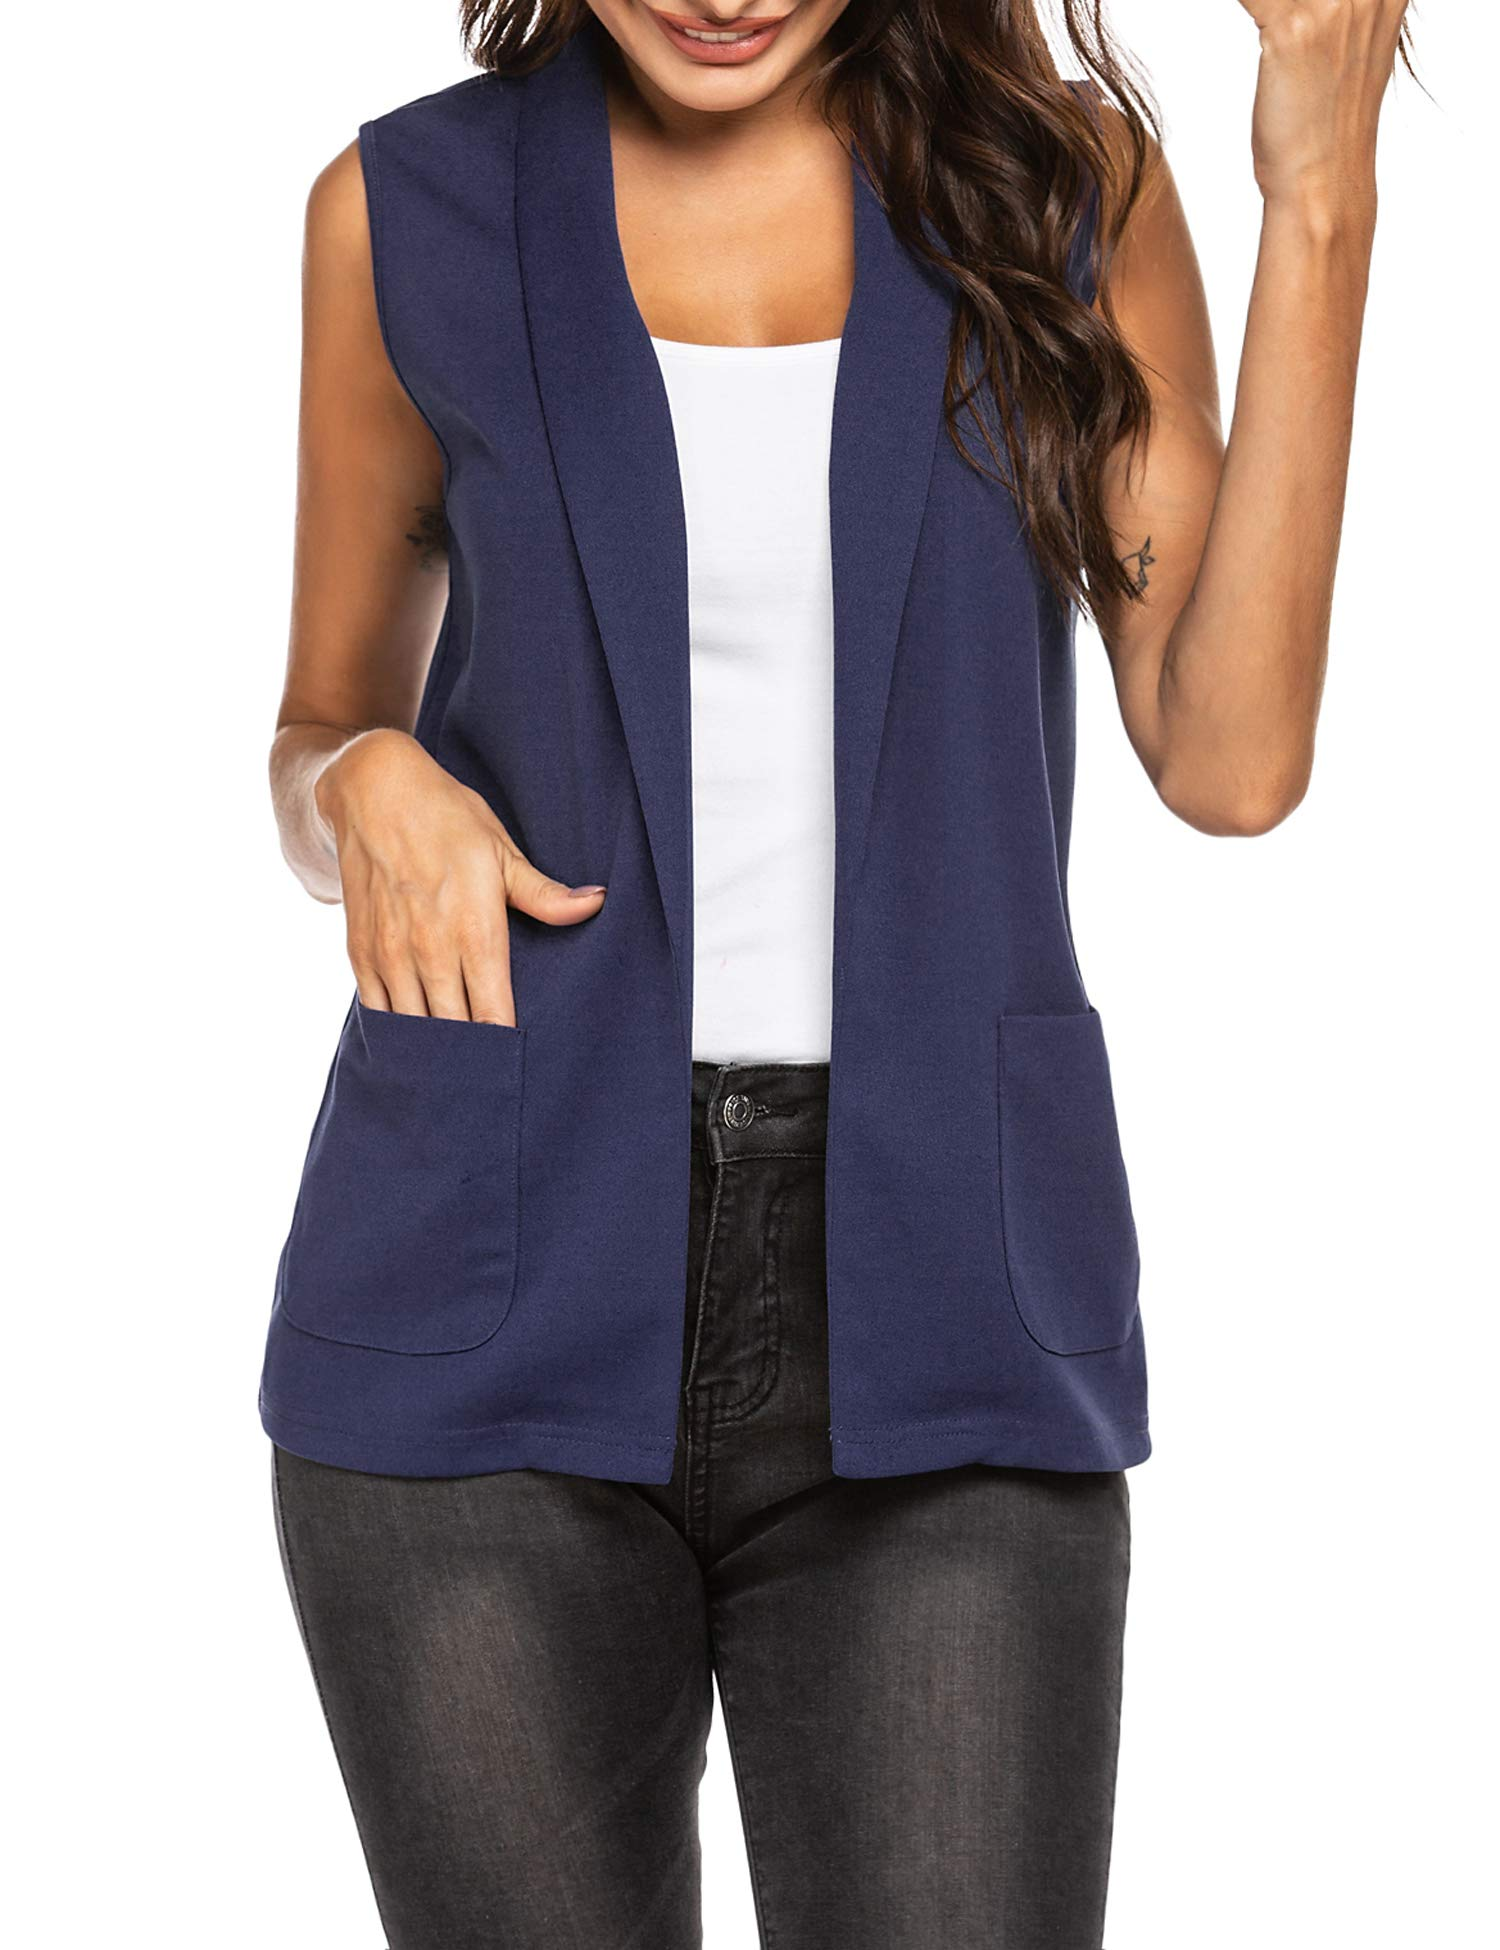 HOTLOOX Women's Sleeveless Blazer Open Front Office Casual Vest Lapel Collar Cardigan with Pockets S-XXL